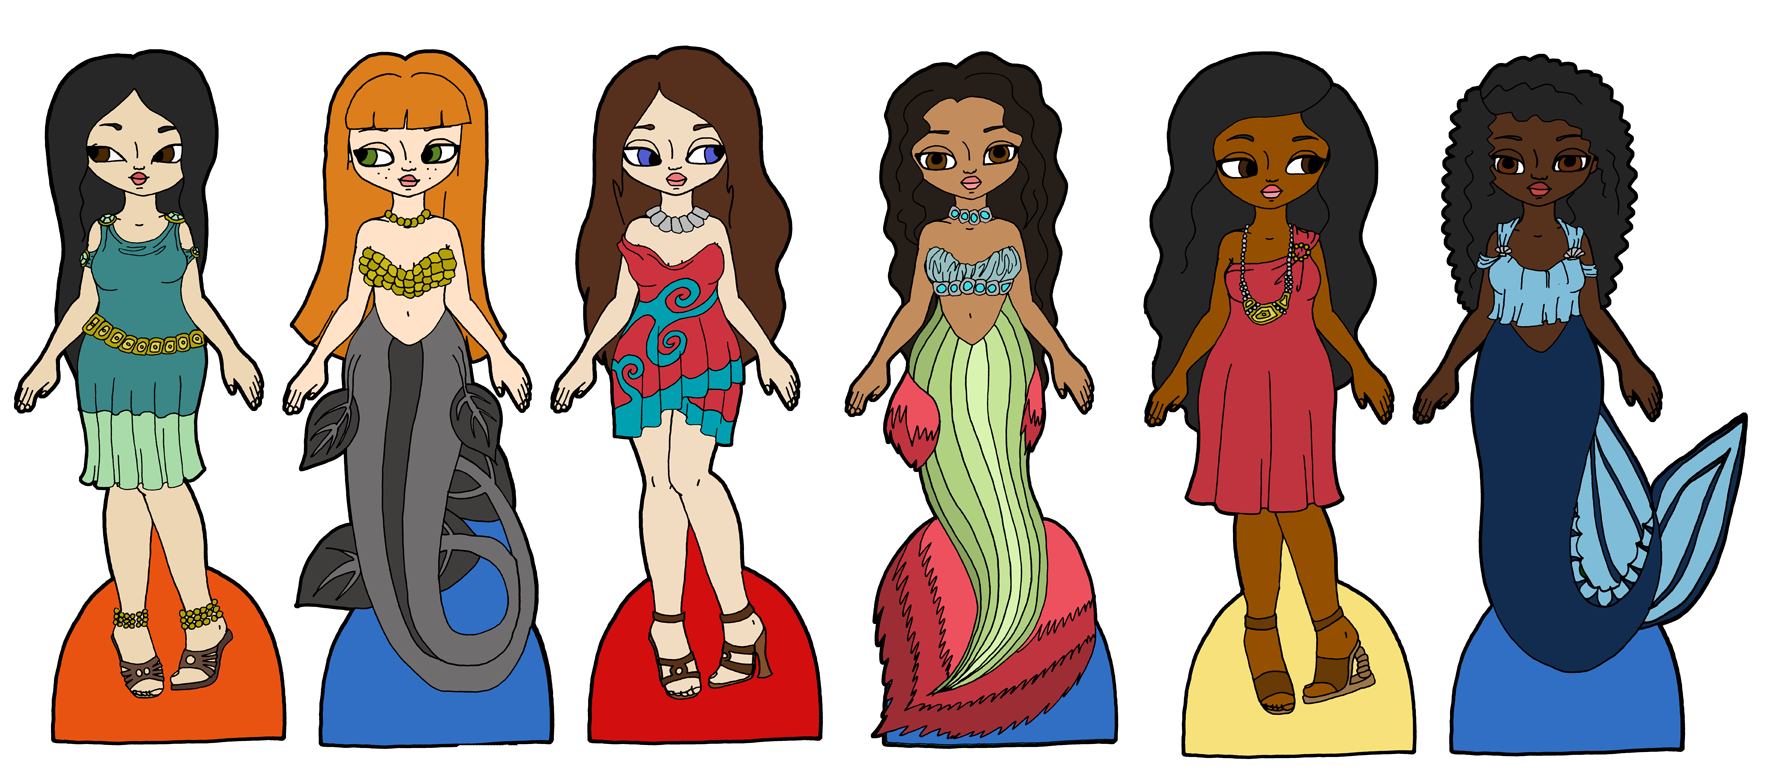 mermaids paper The red-headed woman paper doll in this free printable can be transformed into a mermaid with a green tail seashells free to download and print.